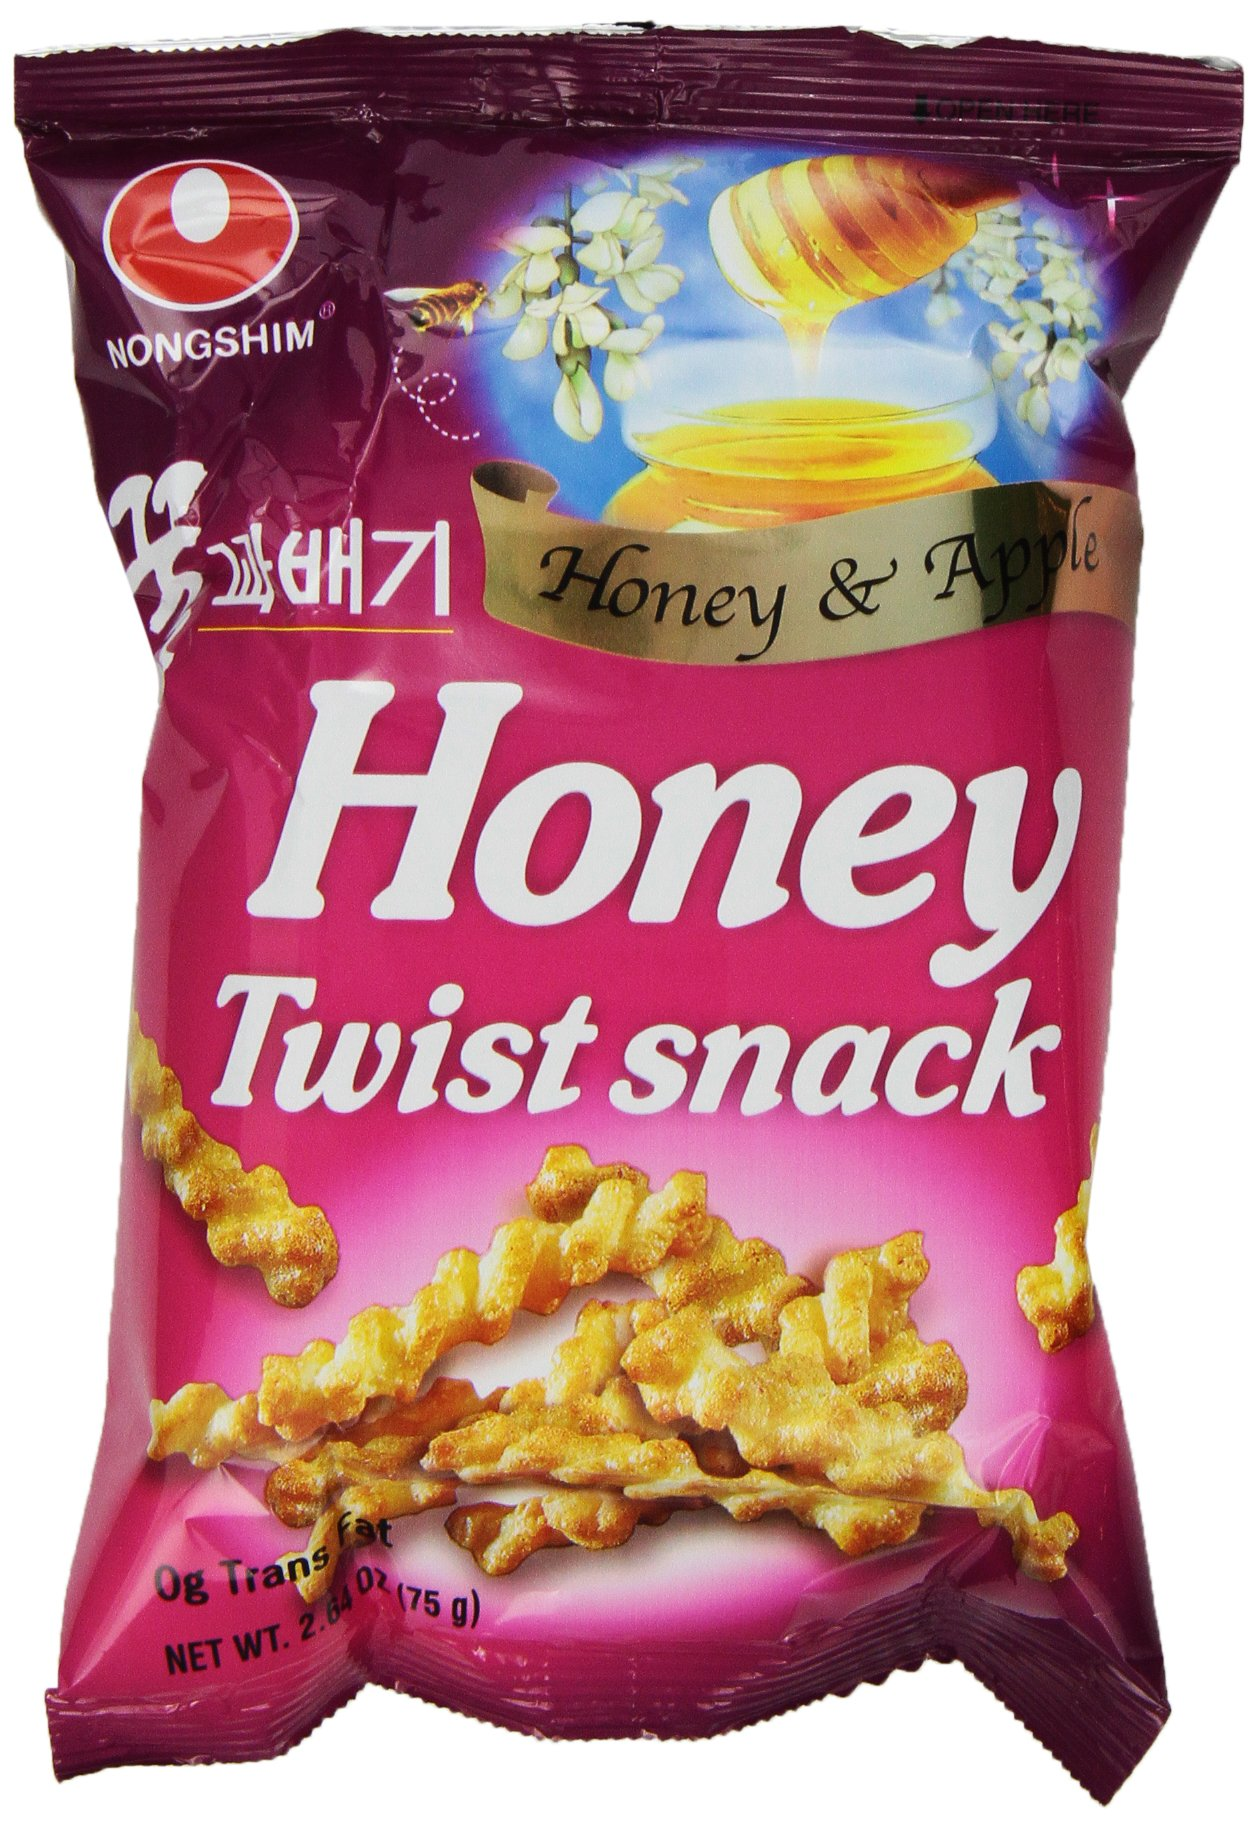 NongShim Honey Twist Snack, 2.64 Ounce Packages (Pack of 20)